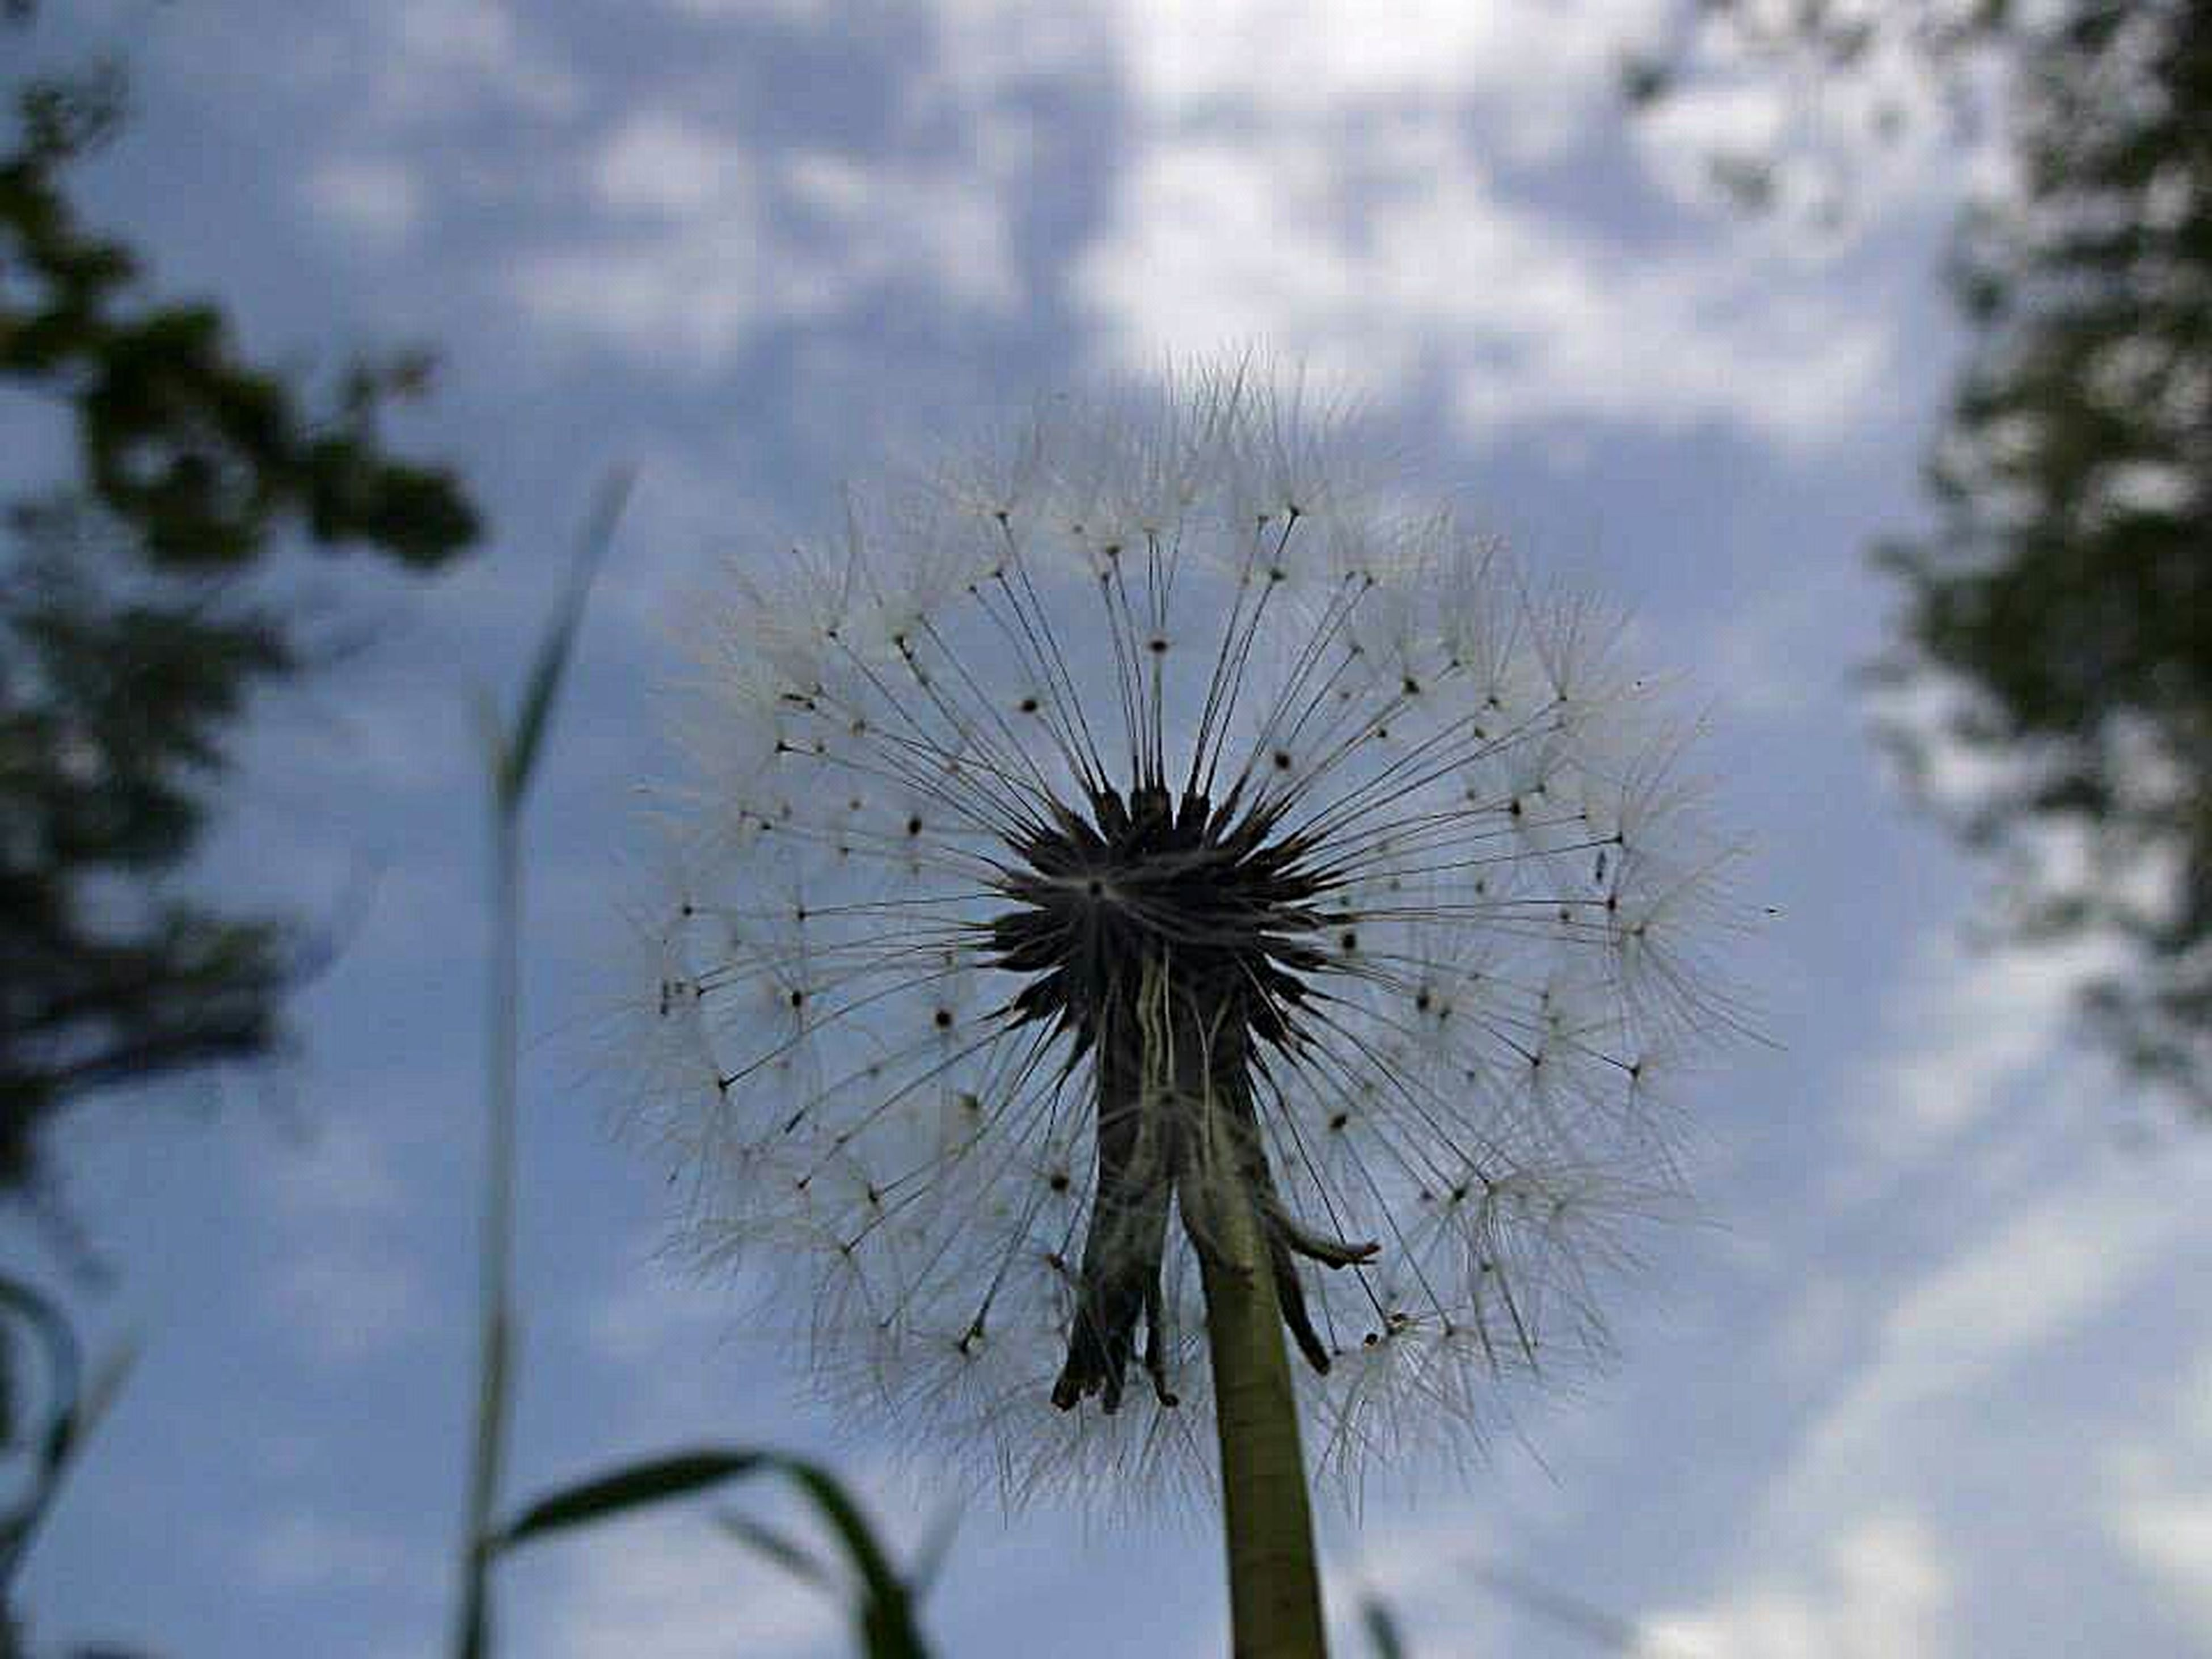 dandelion, flower, sky, focus on foreground, growth, fragility, close-up, stem, nature, beauty in nature, cloud - sky, flower head, plant, softness, day, outdoors, uncultivated, no people, cloudy, cloud, tranquility, botany, selective focus, weather